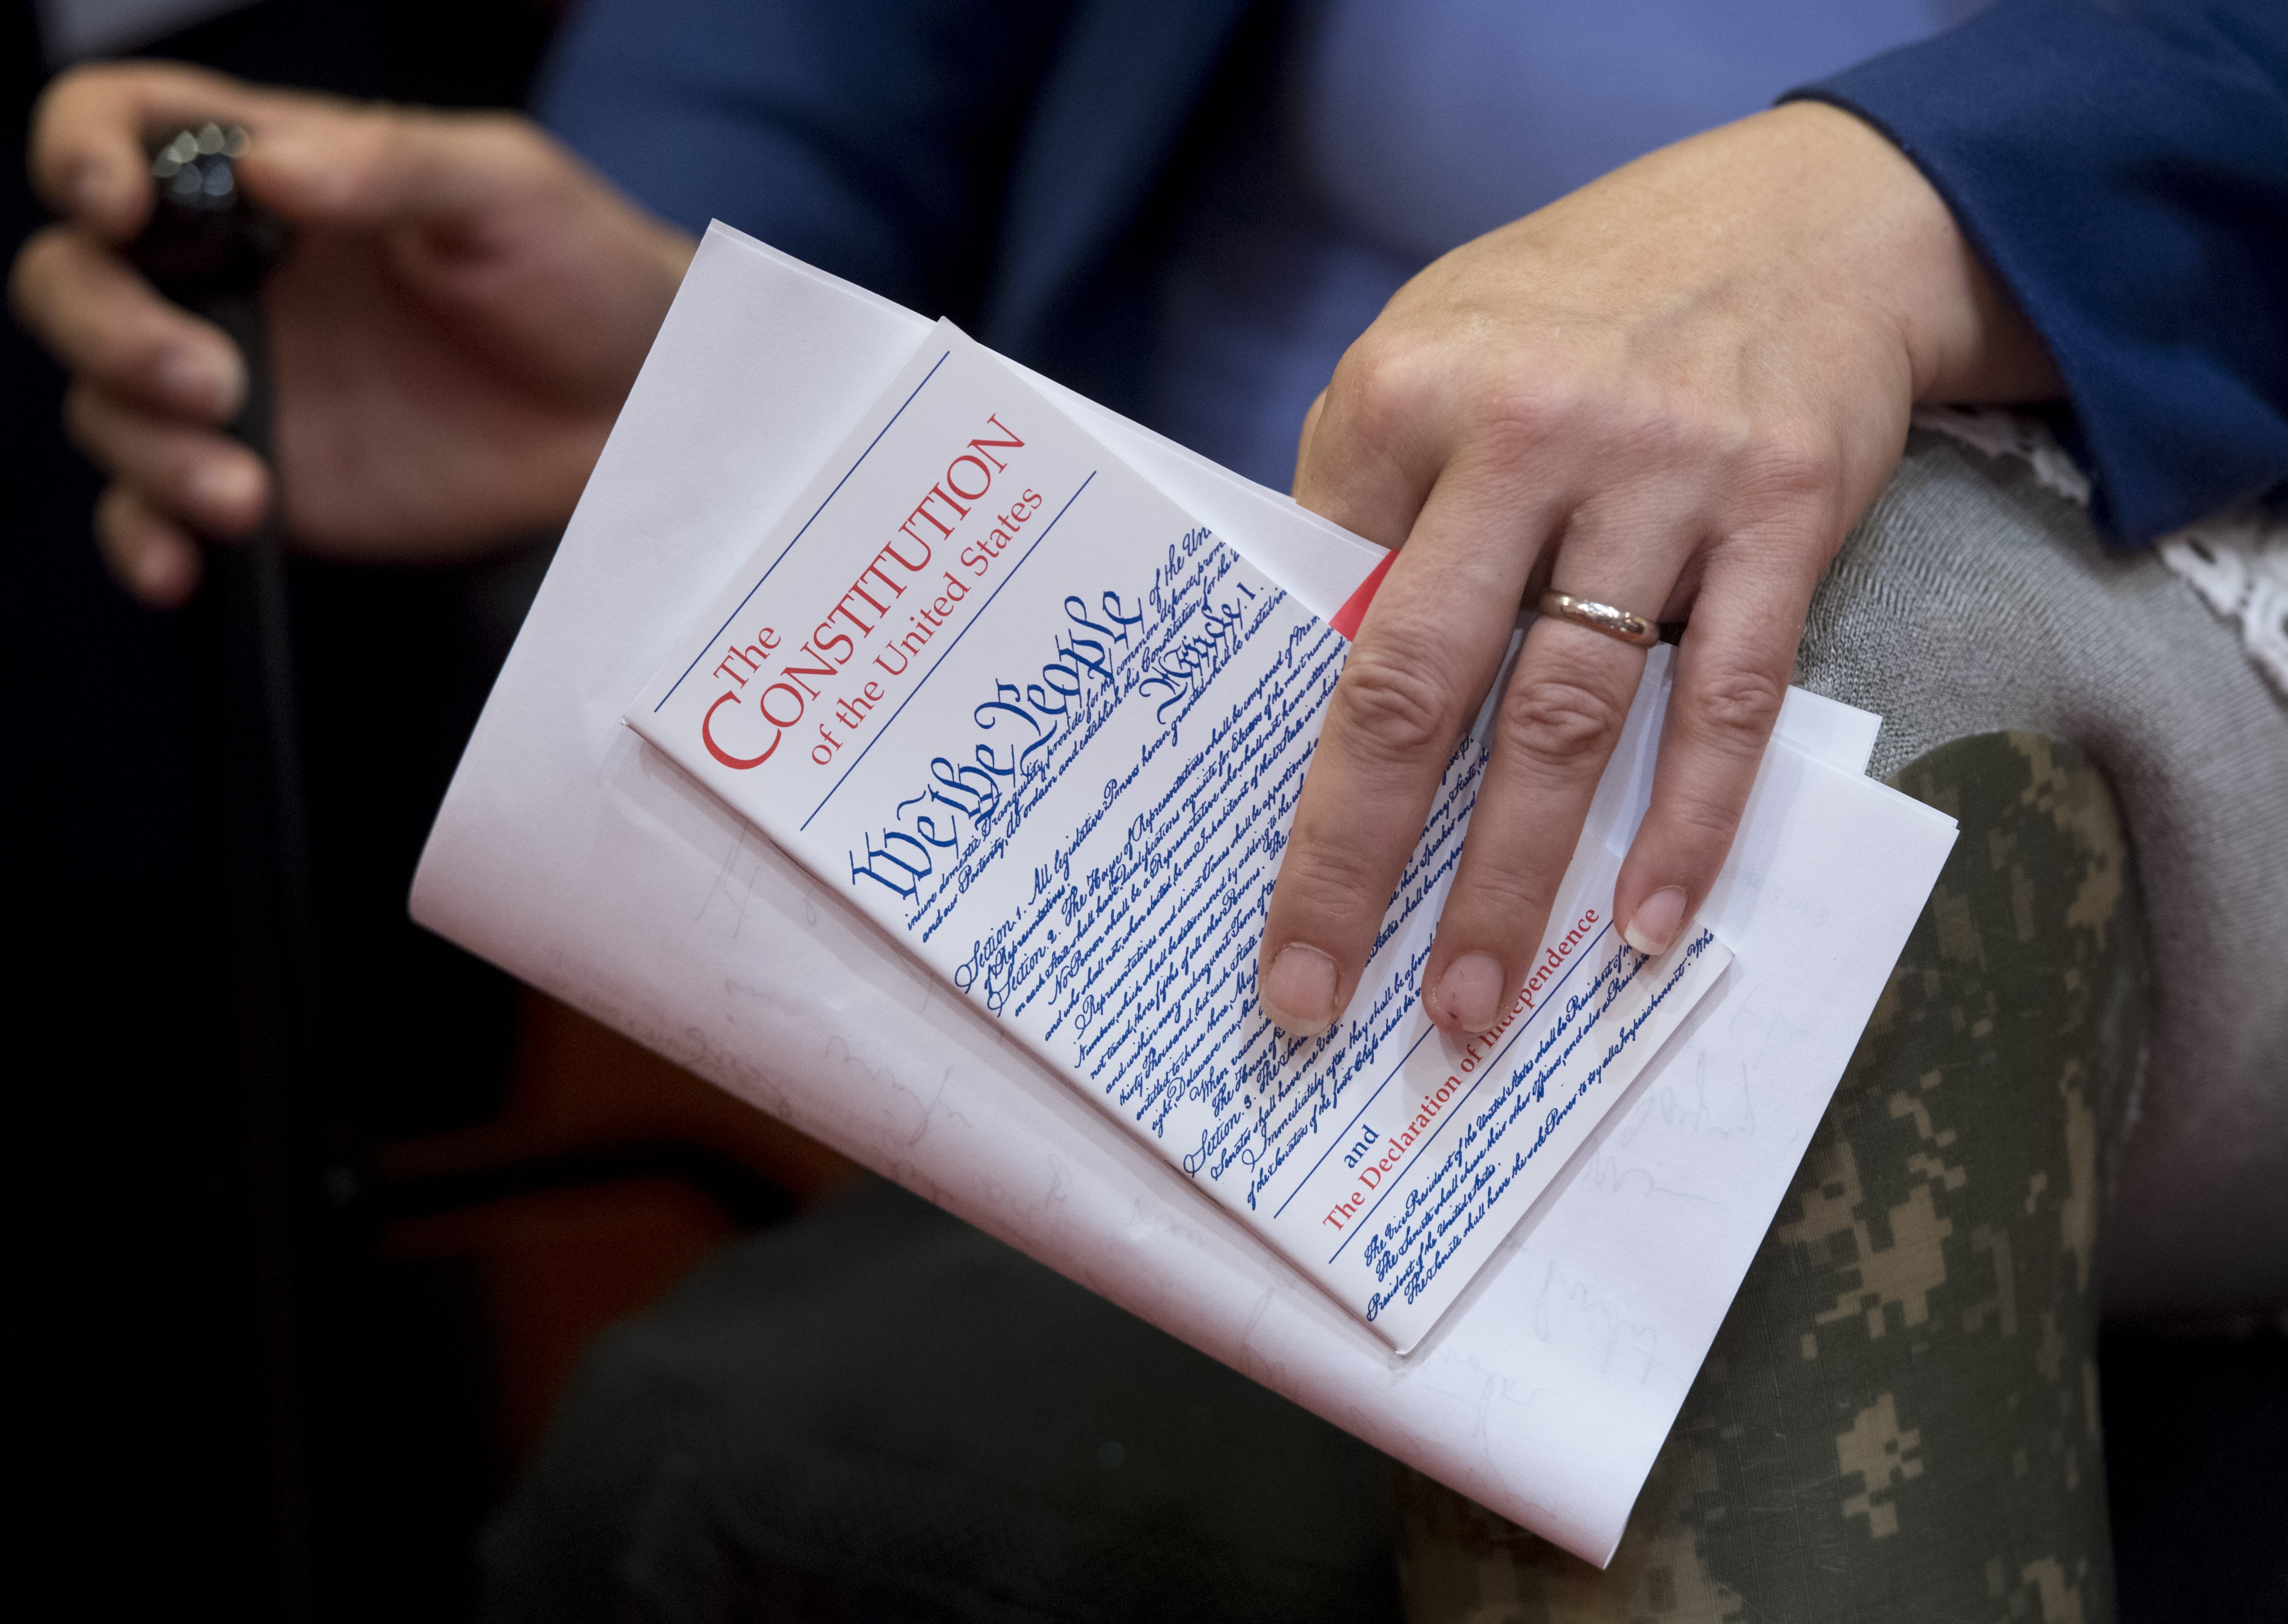 U.S. Senator Tammy Duckworth, Democrat of Illinois, holds a pocket US Constitution at a press conference in Washington, D.C., June 20, 2017.